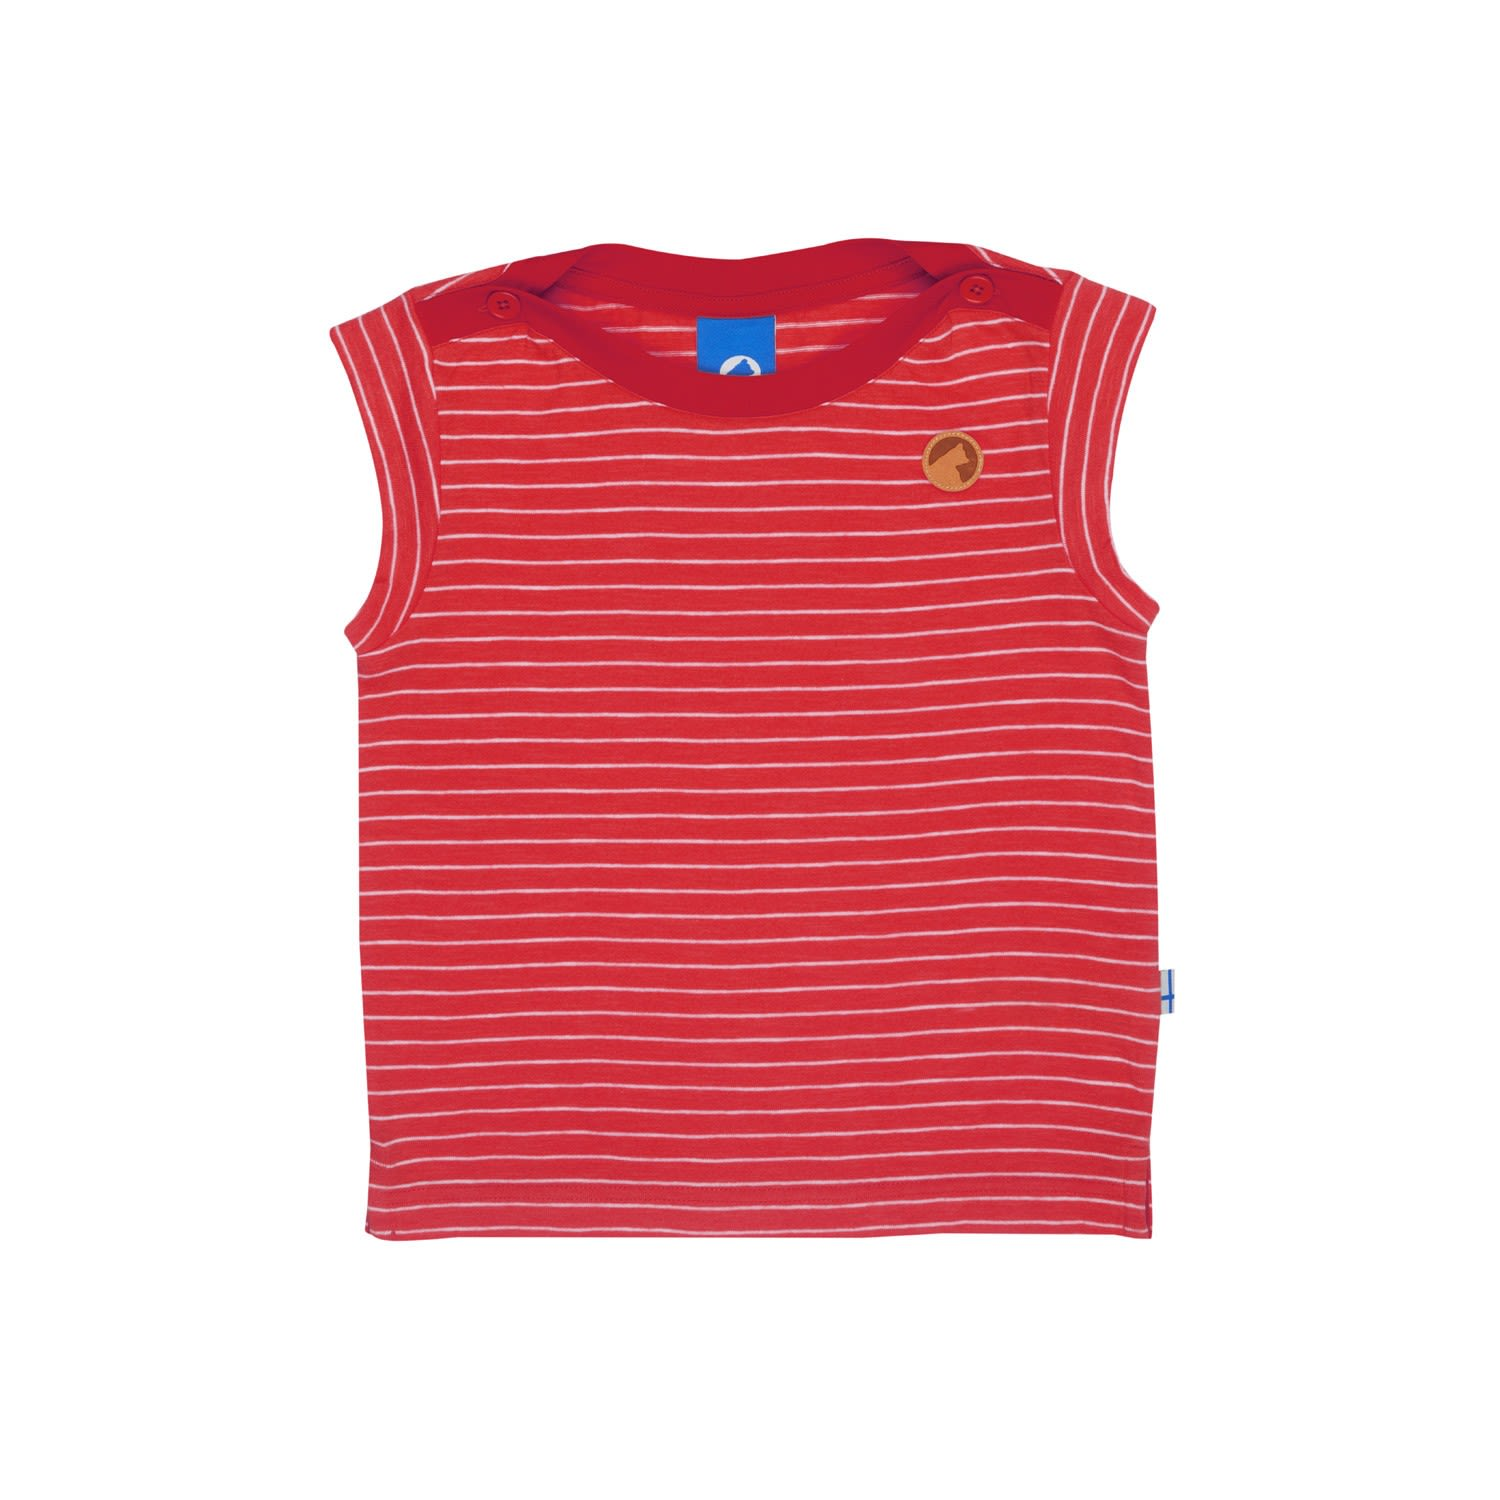 Finkid Girls Pikku Hillevi Rot, Female 80 -90 -Farbe Cranberry -Offwhite, 80 -90